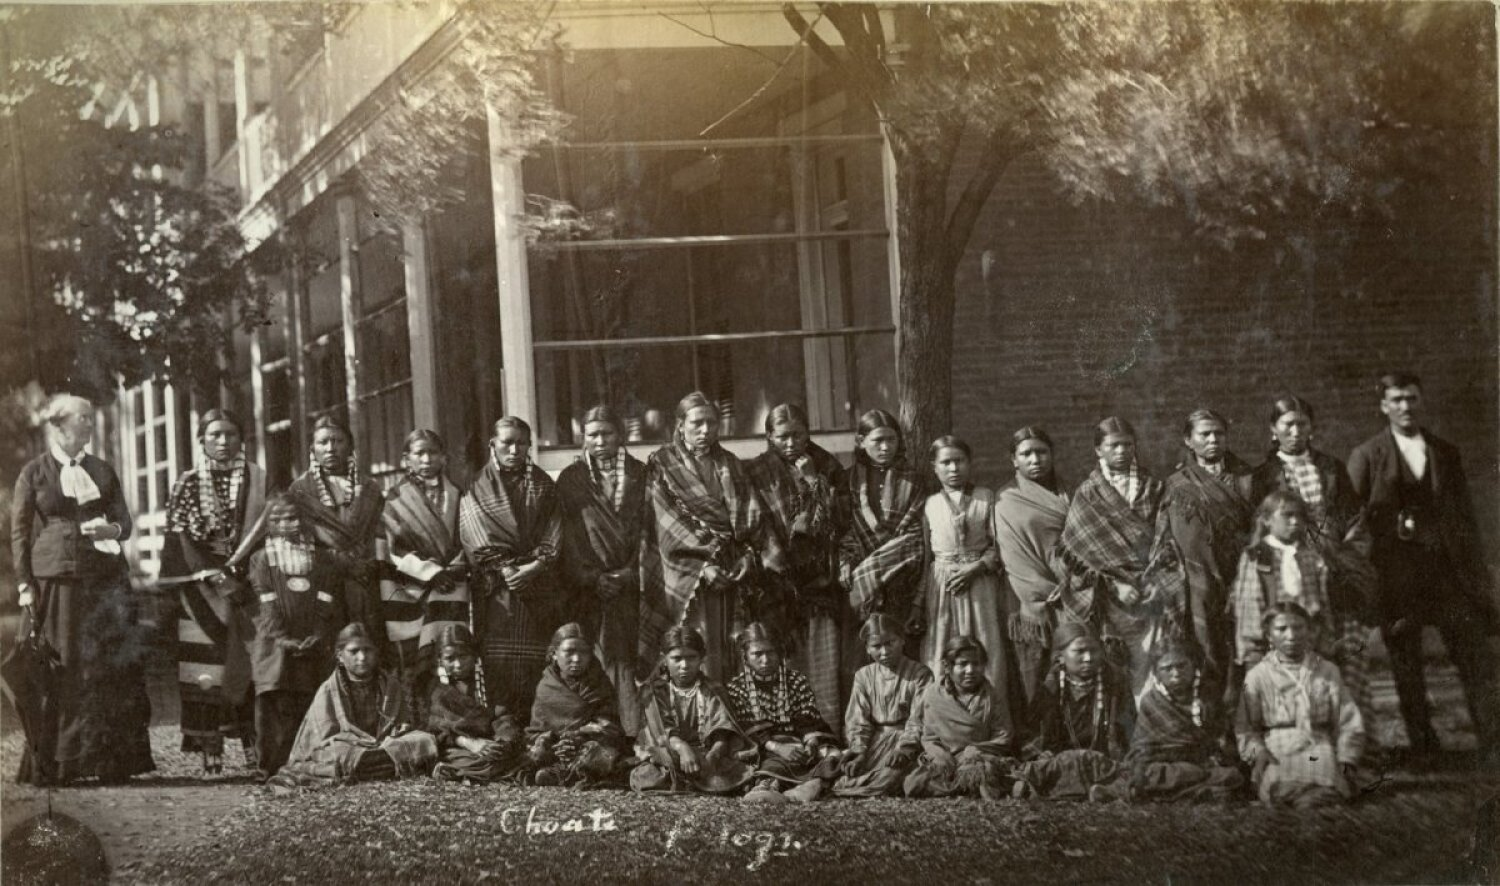 A group portrait shows the first female students to arrive at the Carlisle Indian Industrial School from the Pine Ridge and Rosebud Sioux reservations on October 6, 1879. Several of the girls in the photo later died and were buried at the school for more than 140 years before finally being sent to their relatives in South Dakota in July 2021. School matron Sarah Mather is standing at left and interpreter Charles Tackett is standing at right. (Photo courtesy of the Cumberland County Historical Society)